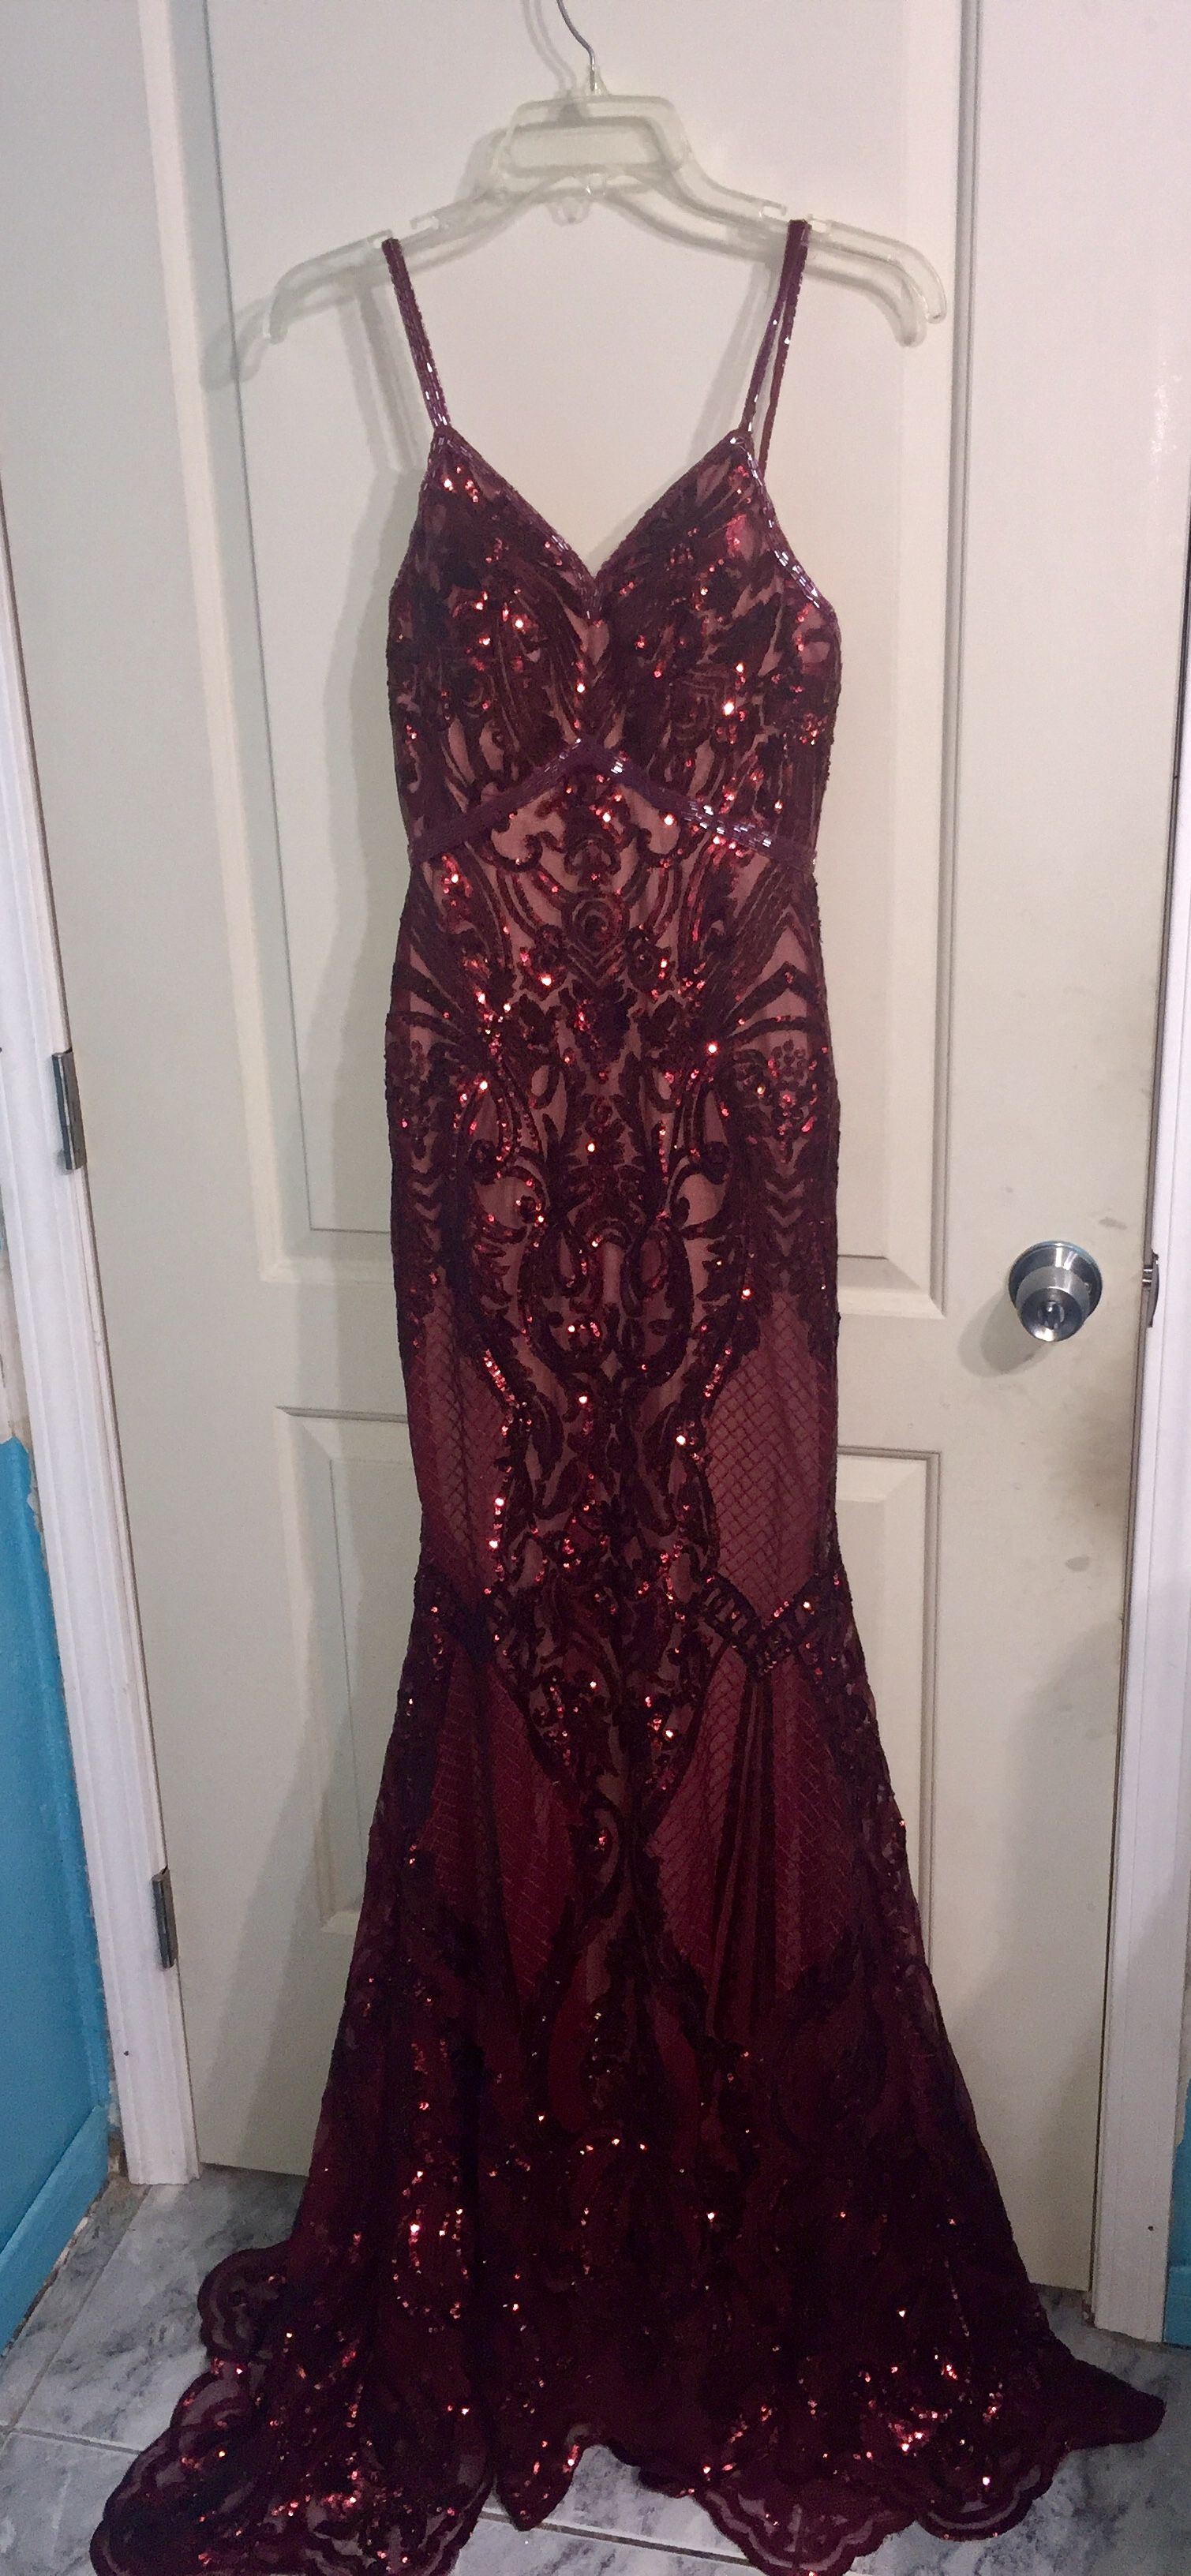 Size 2 Prom Dress For Sale In Houston Texas The Dress List Prom Dresses For Sale Dresses Prom Dresses